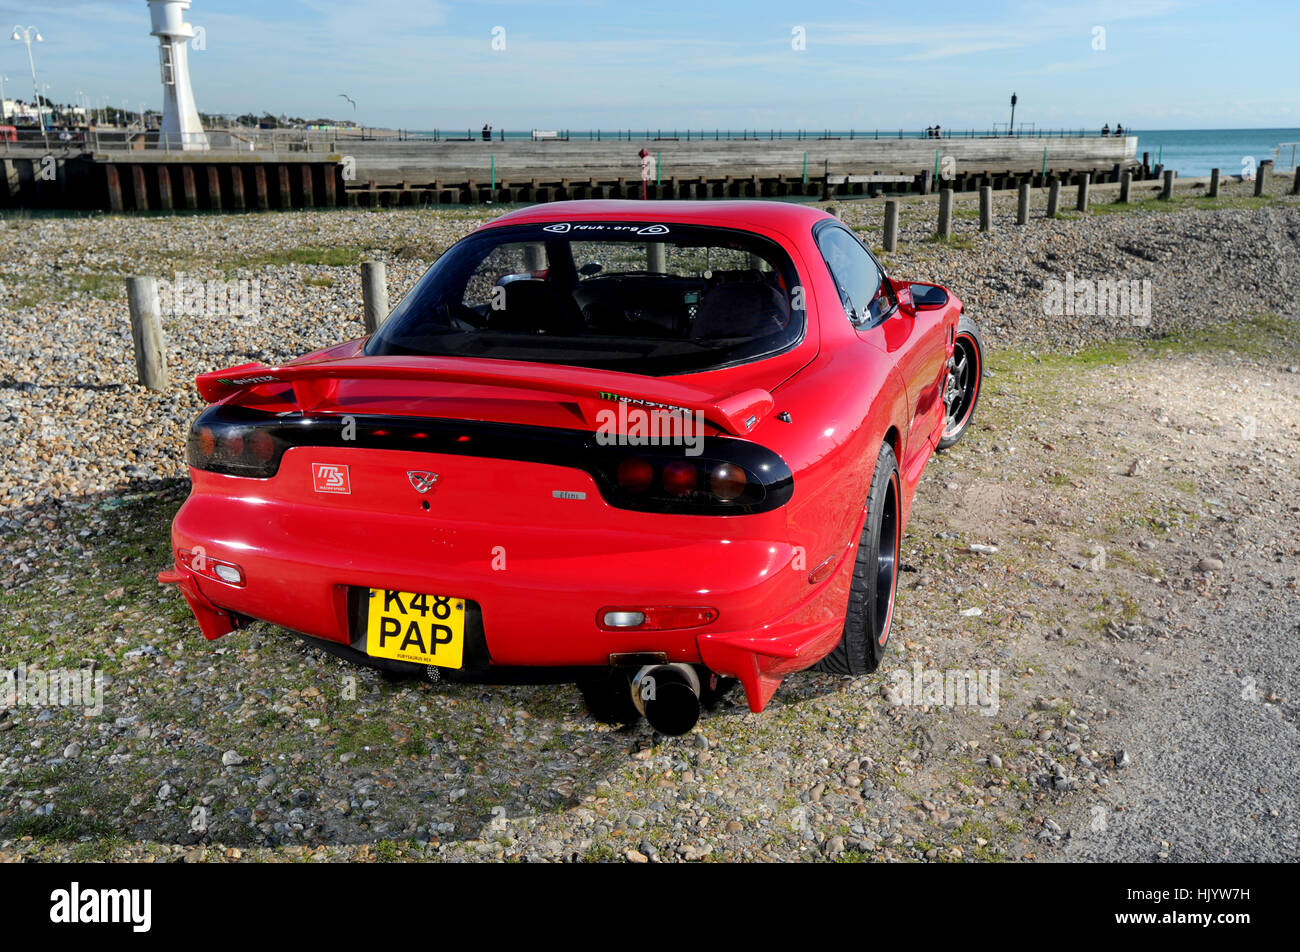 1992 Mazda RX7 Modified And Tuned Japanese Sports Car, Fitted With A Wankel  Rotary Engine